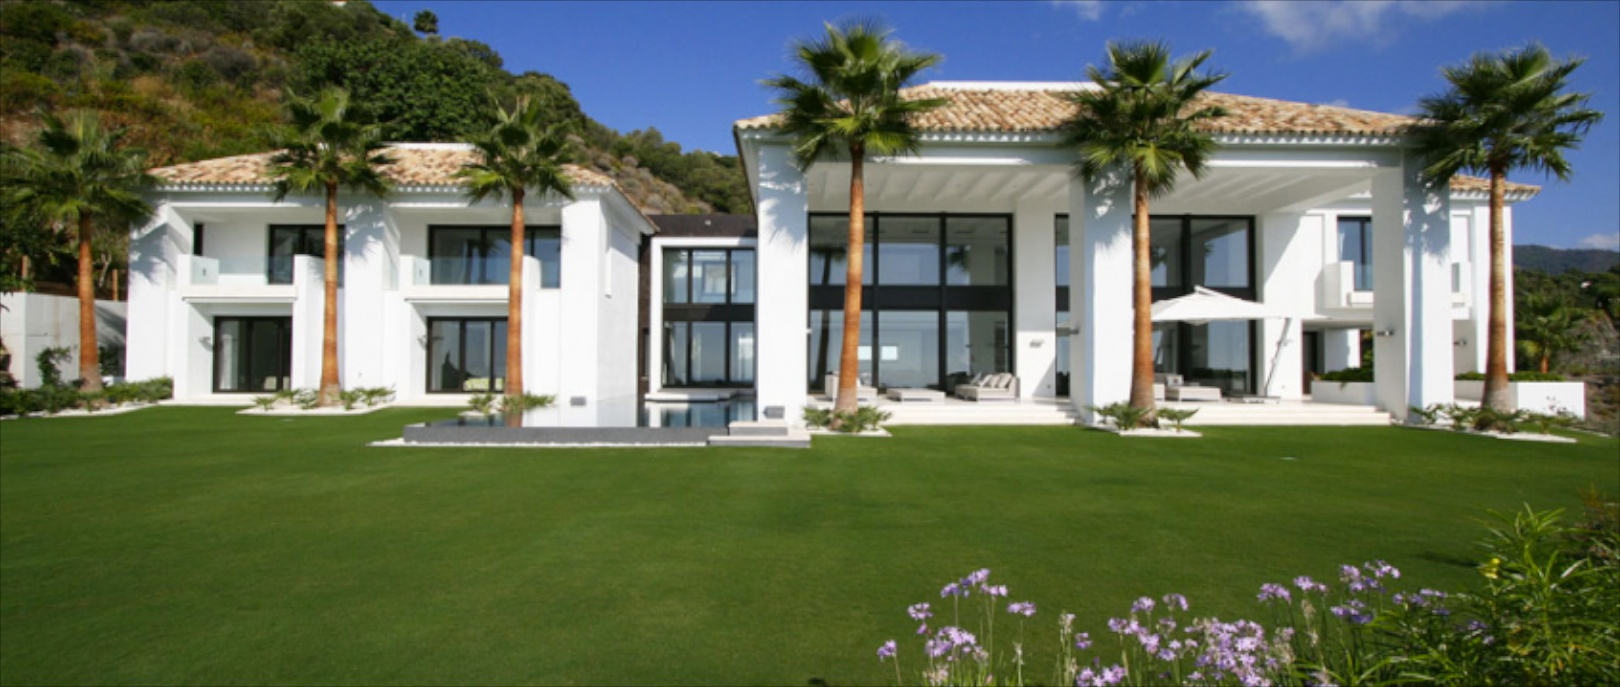 Luxury Country Villas, mansions For Sale in La Zagaleta, Benahavis, Marbella